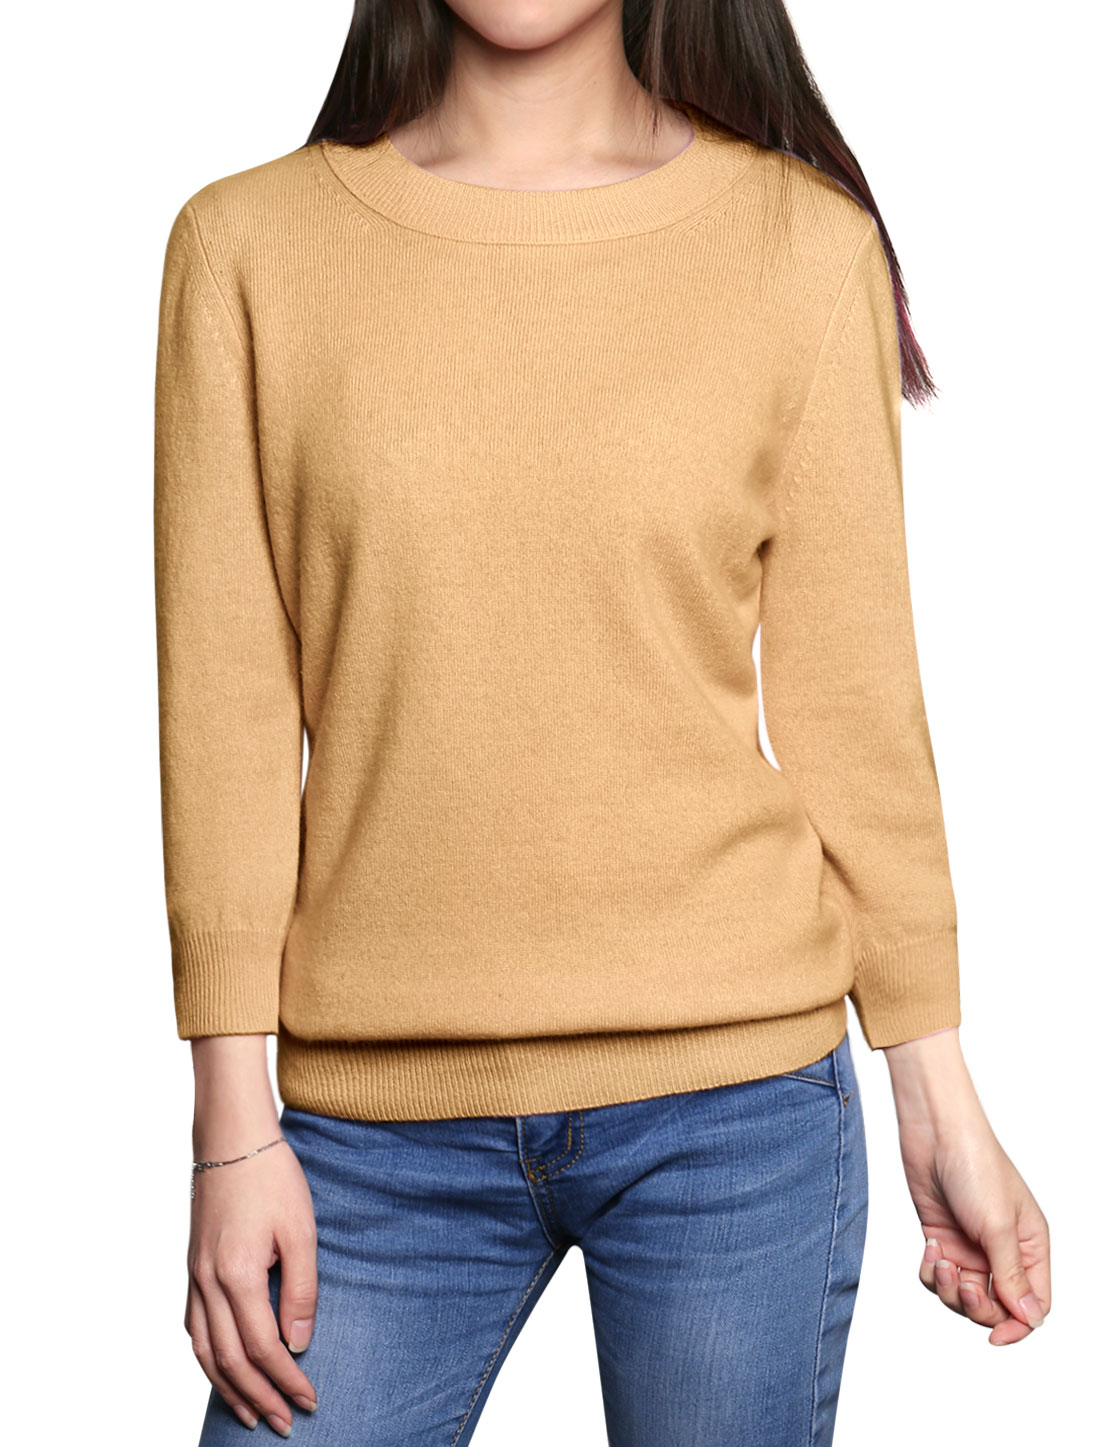 Women Crew Neck Classic Cashmere Sweater Brown L